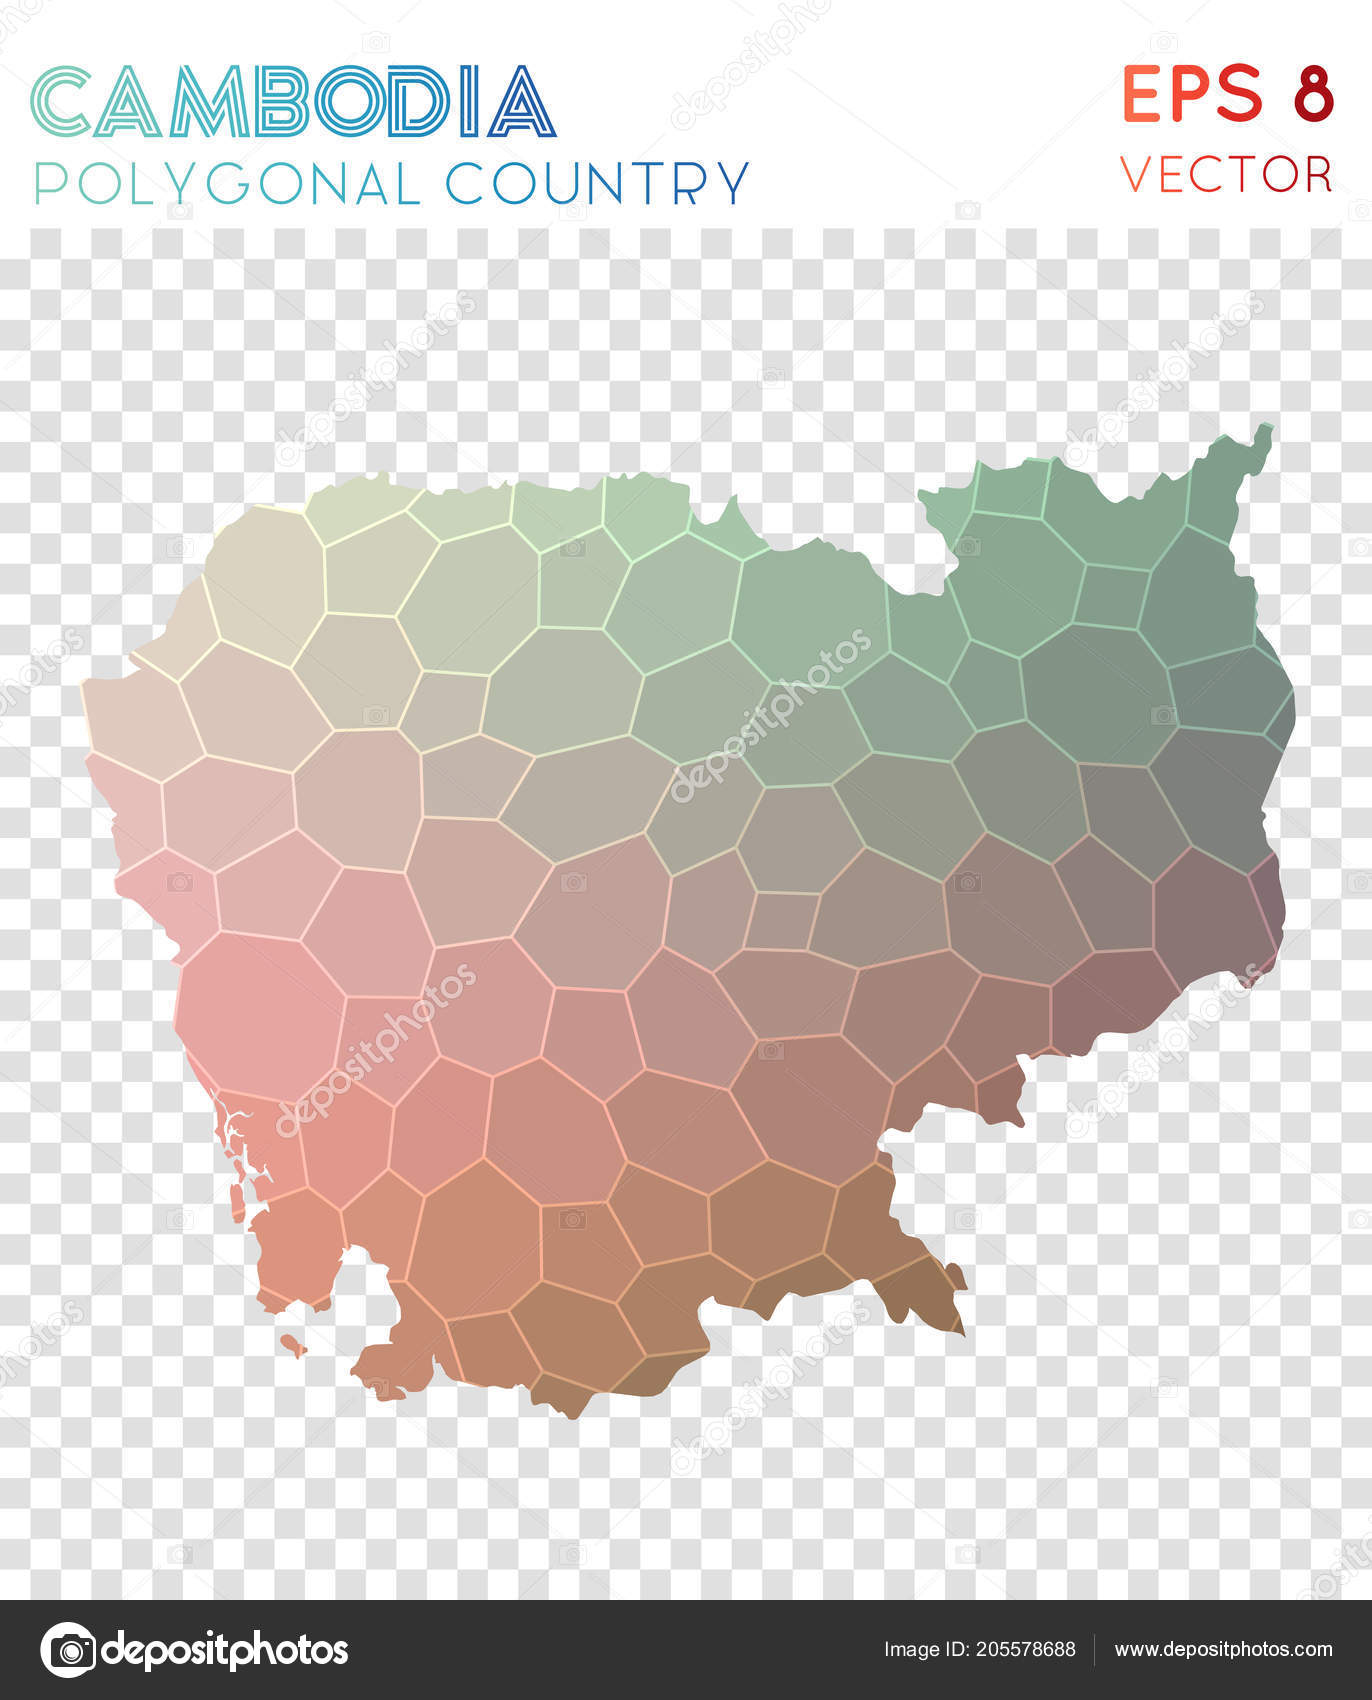 Elegant Cambodia Polygonal Map Mosaic Style Country Outstanding Low Poly Style  Modern Design Cambodia U2014 Vetores De